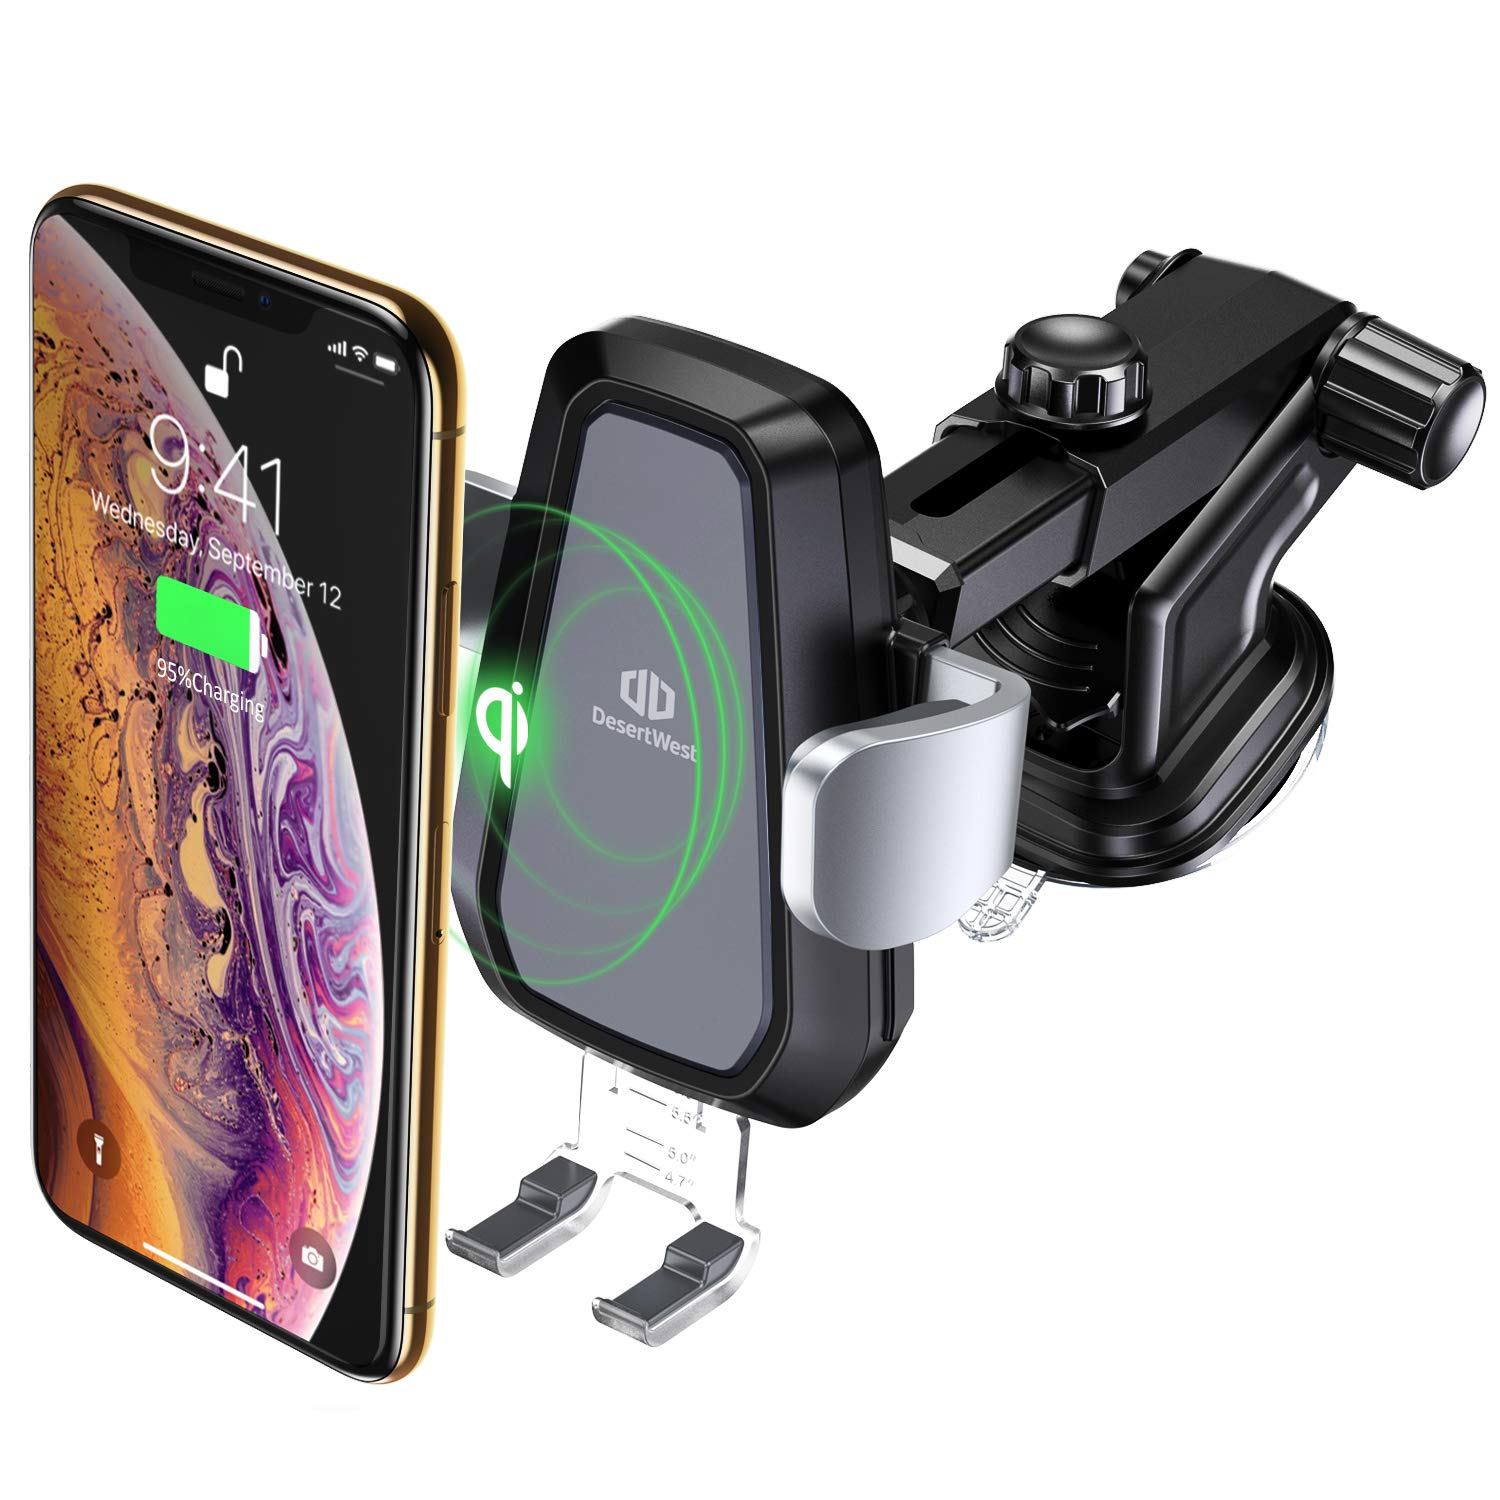 DesertWest Wireless Car Charger Mount, Automatic 10w Qi Fast Charging Car Phone Holder Dashboard Air Vent Compatible Samsung Galaxy S8 S8 Plus/ S9 S9+ S7 S7 Edge, iPhone 8/ 8Plus/X/XS/XS Max